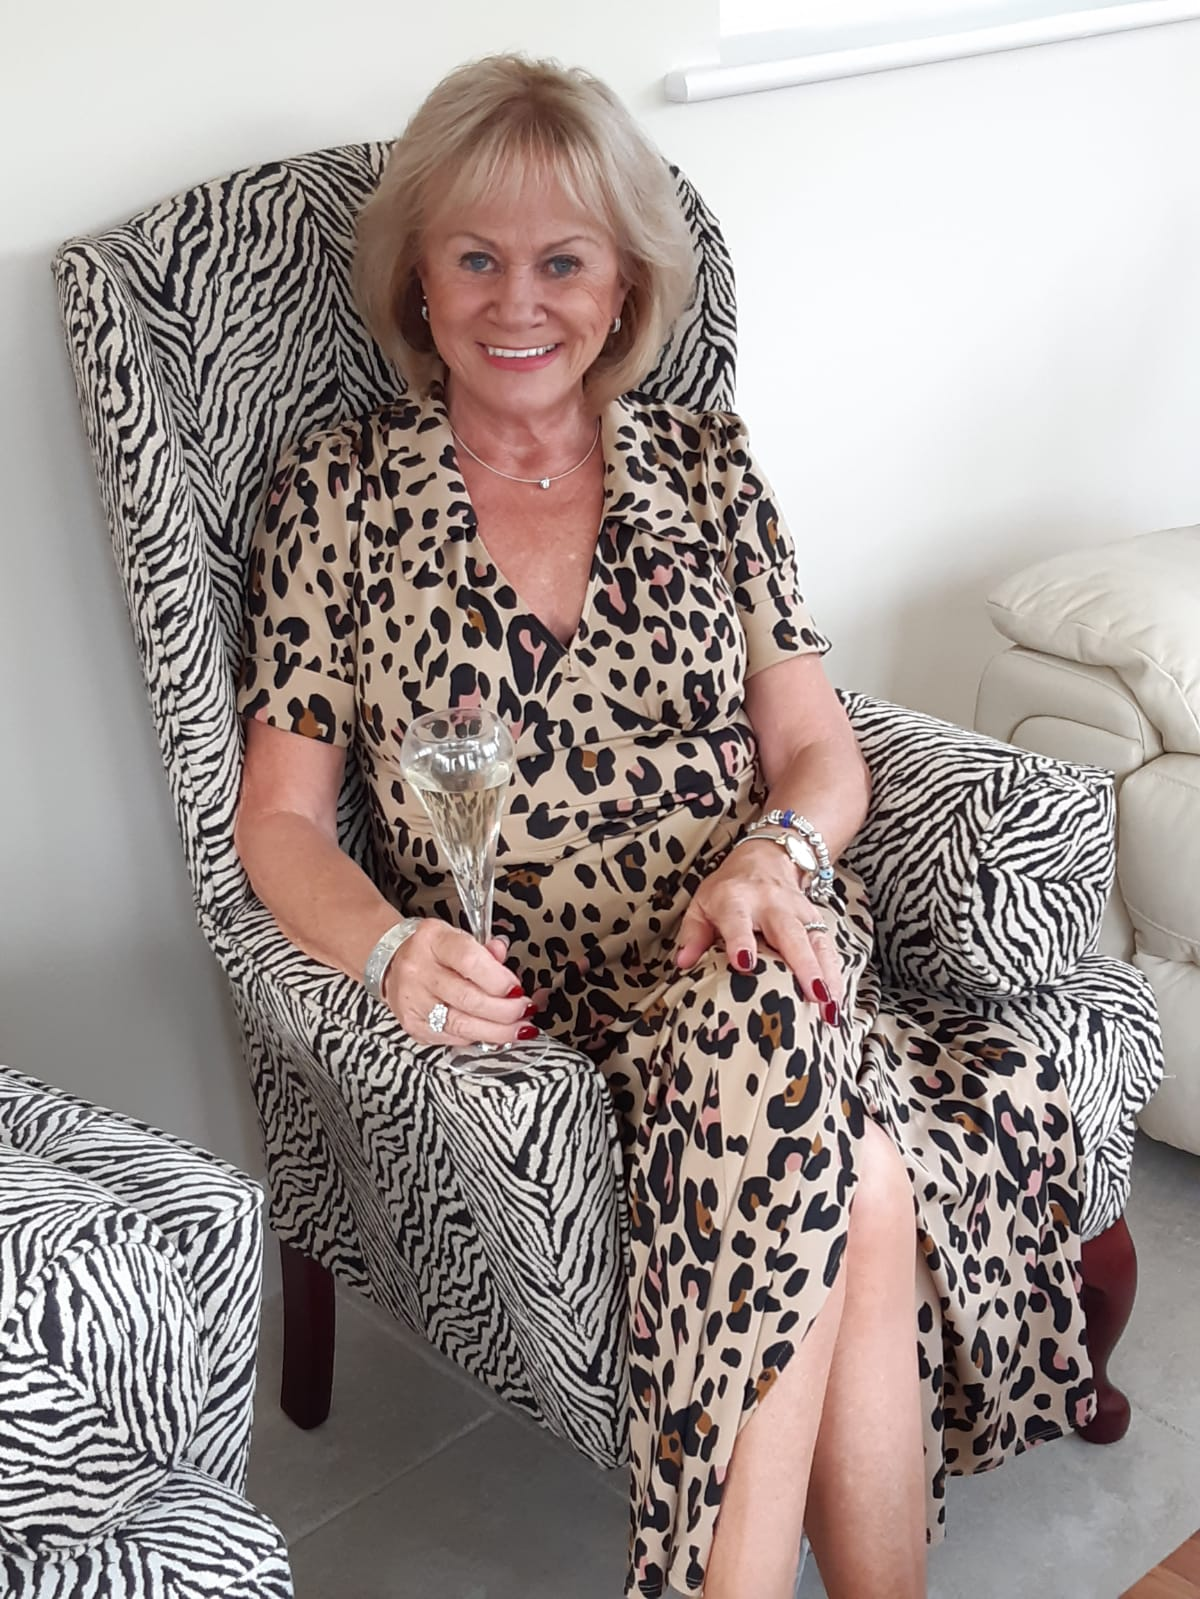 Stacey Duguid's mother in leopard print